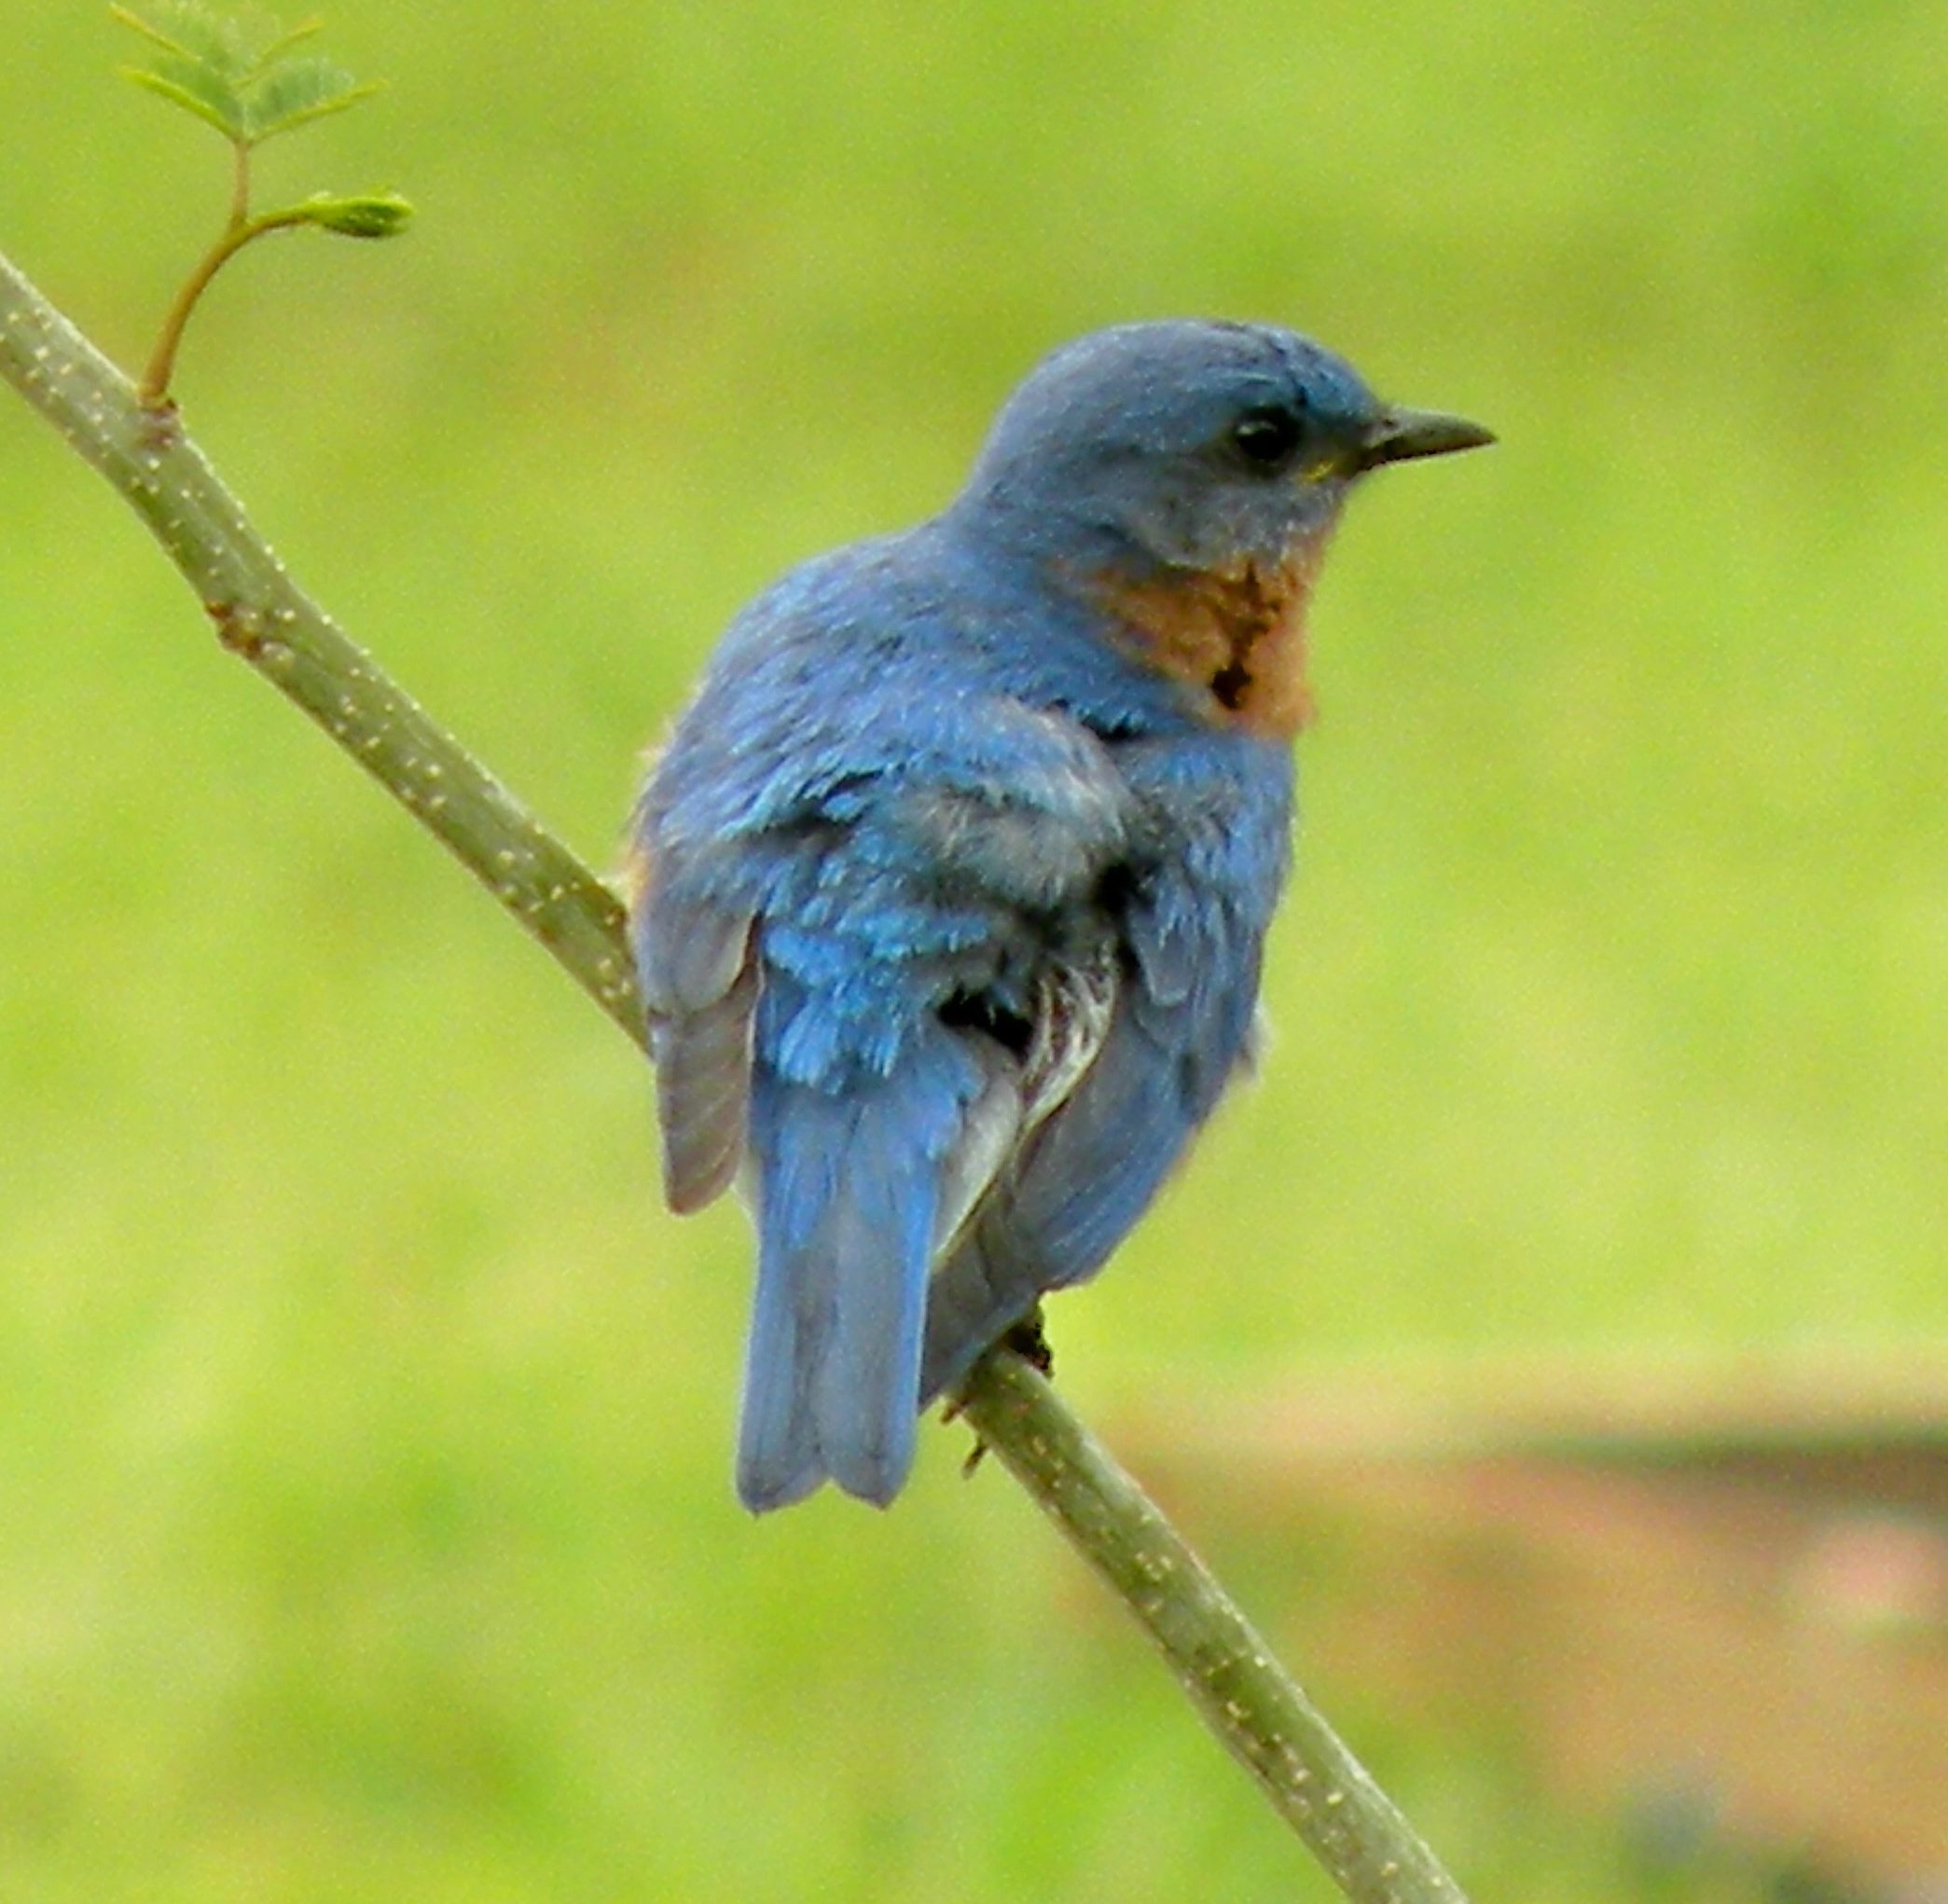 Etonnant Photos Of Bluebirds, Bluebird Nests And Baby Bluebirds Included. Tips On Attracting  Bluebirds To Your Backyard.